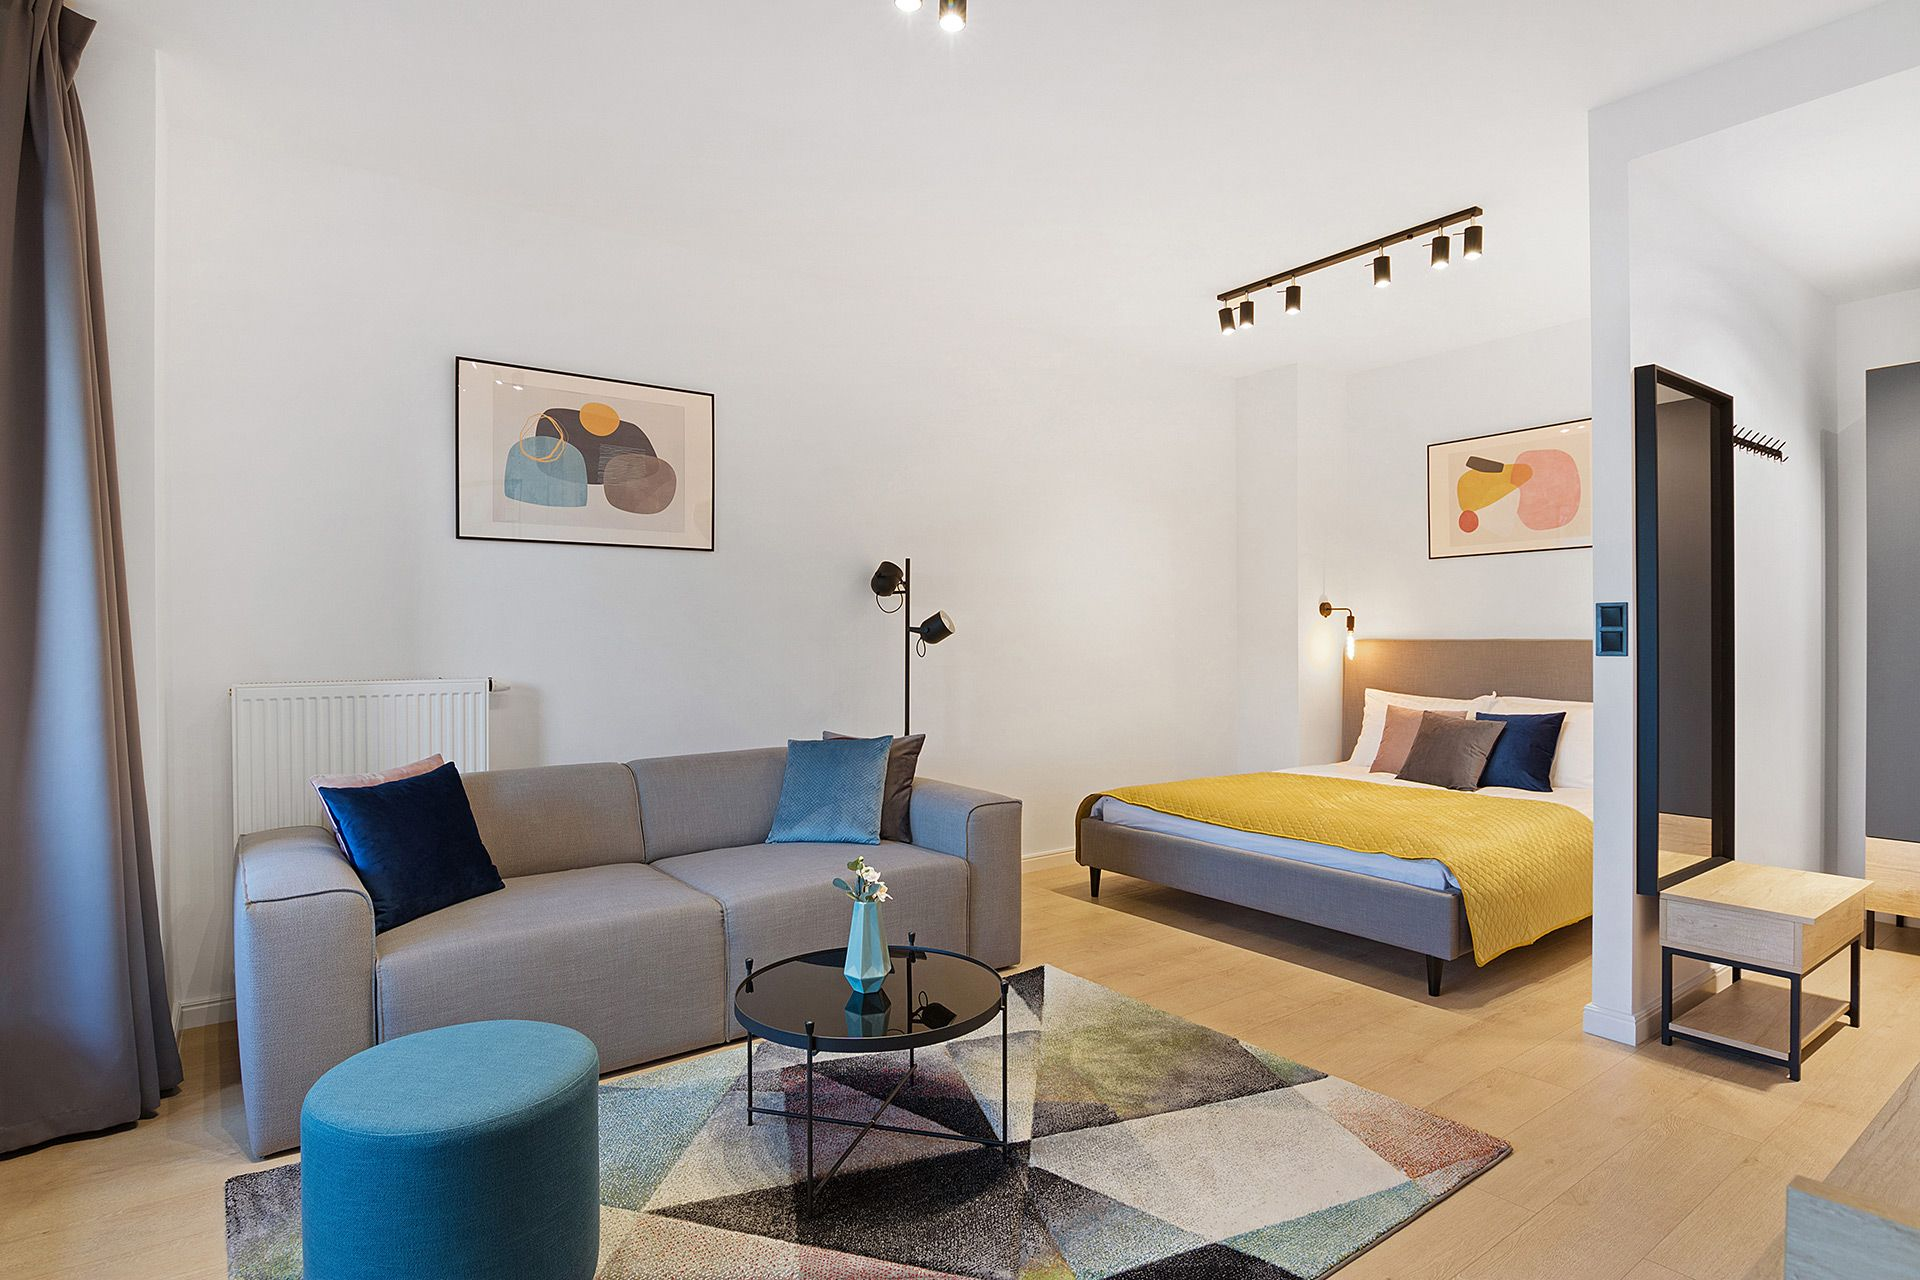 Studio - Medium apartment to rent in Warsaw UPR-A-067-2